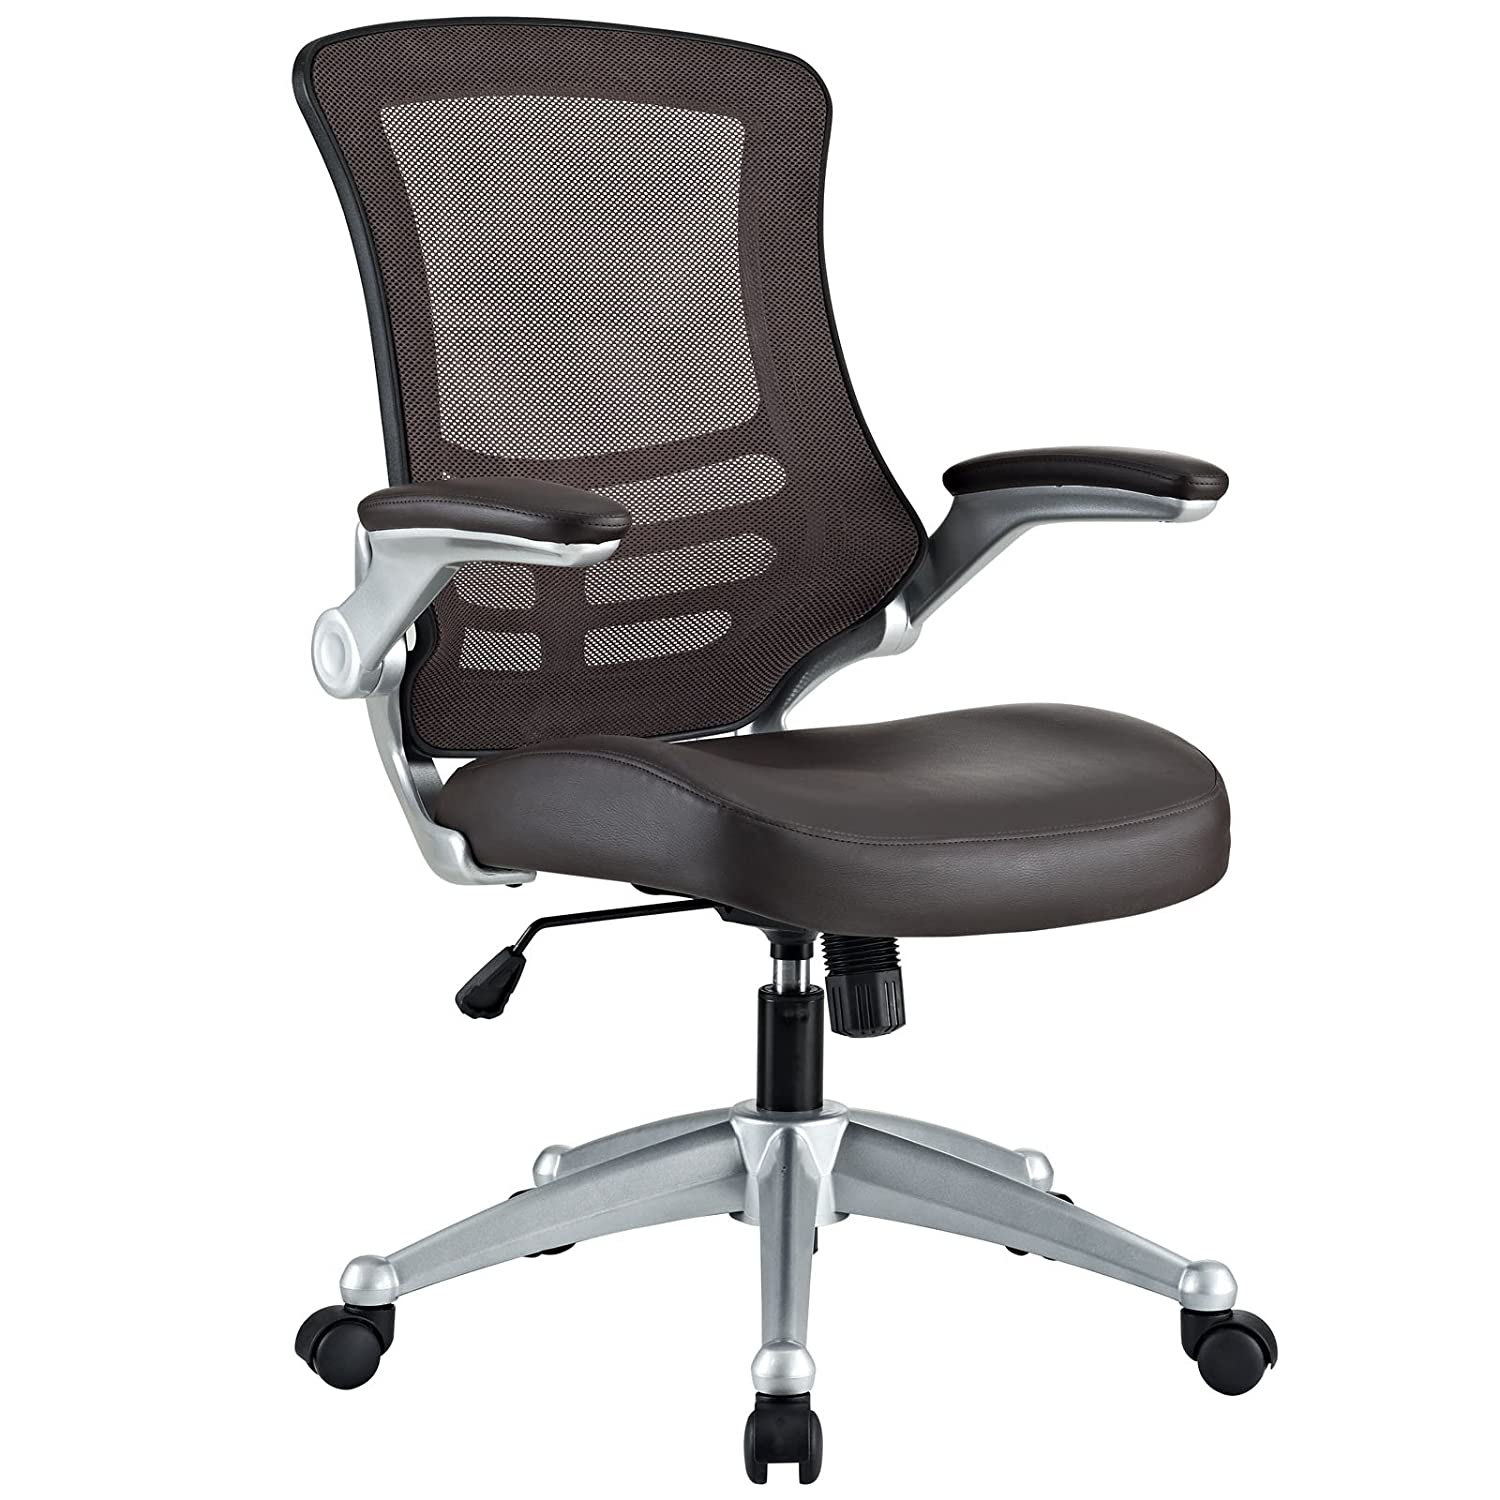 Modway Attainment Office Chair with Black Mesh Brown and Leatherette Seat